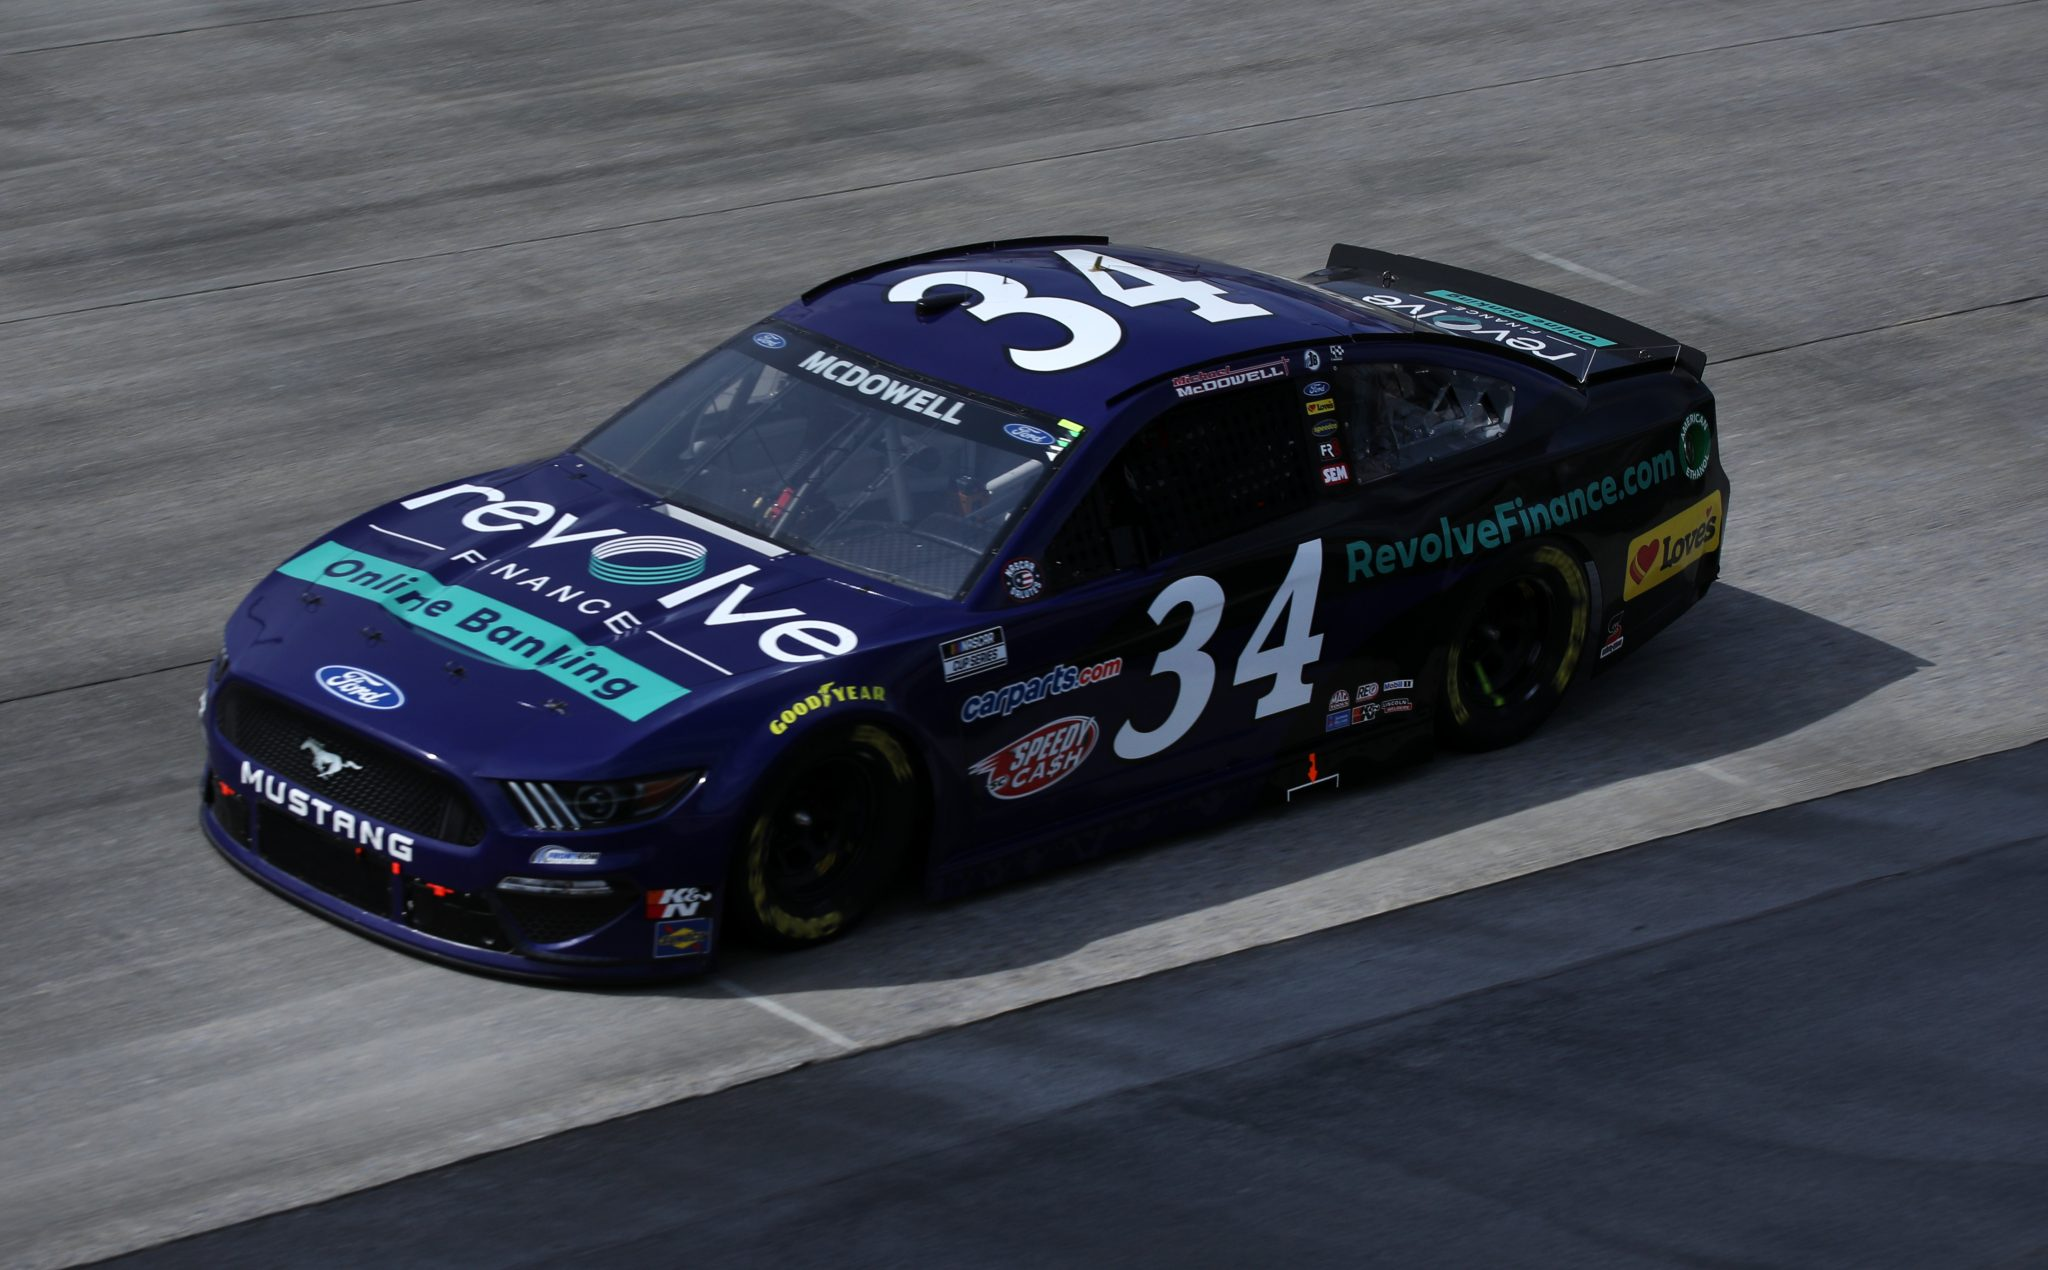 DOVER, DELAWARE - MAY 16: Michael McDowell, driver of the #34 Revolve Finance Ford, races during the NASCAR Cup Series Drydene 400 at Dover International Speedway on May 16, 2021 in Dover, Delaware. (Photo by Sean Gardner/Getty Images) | Getty Images